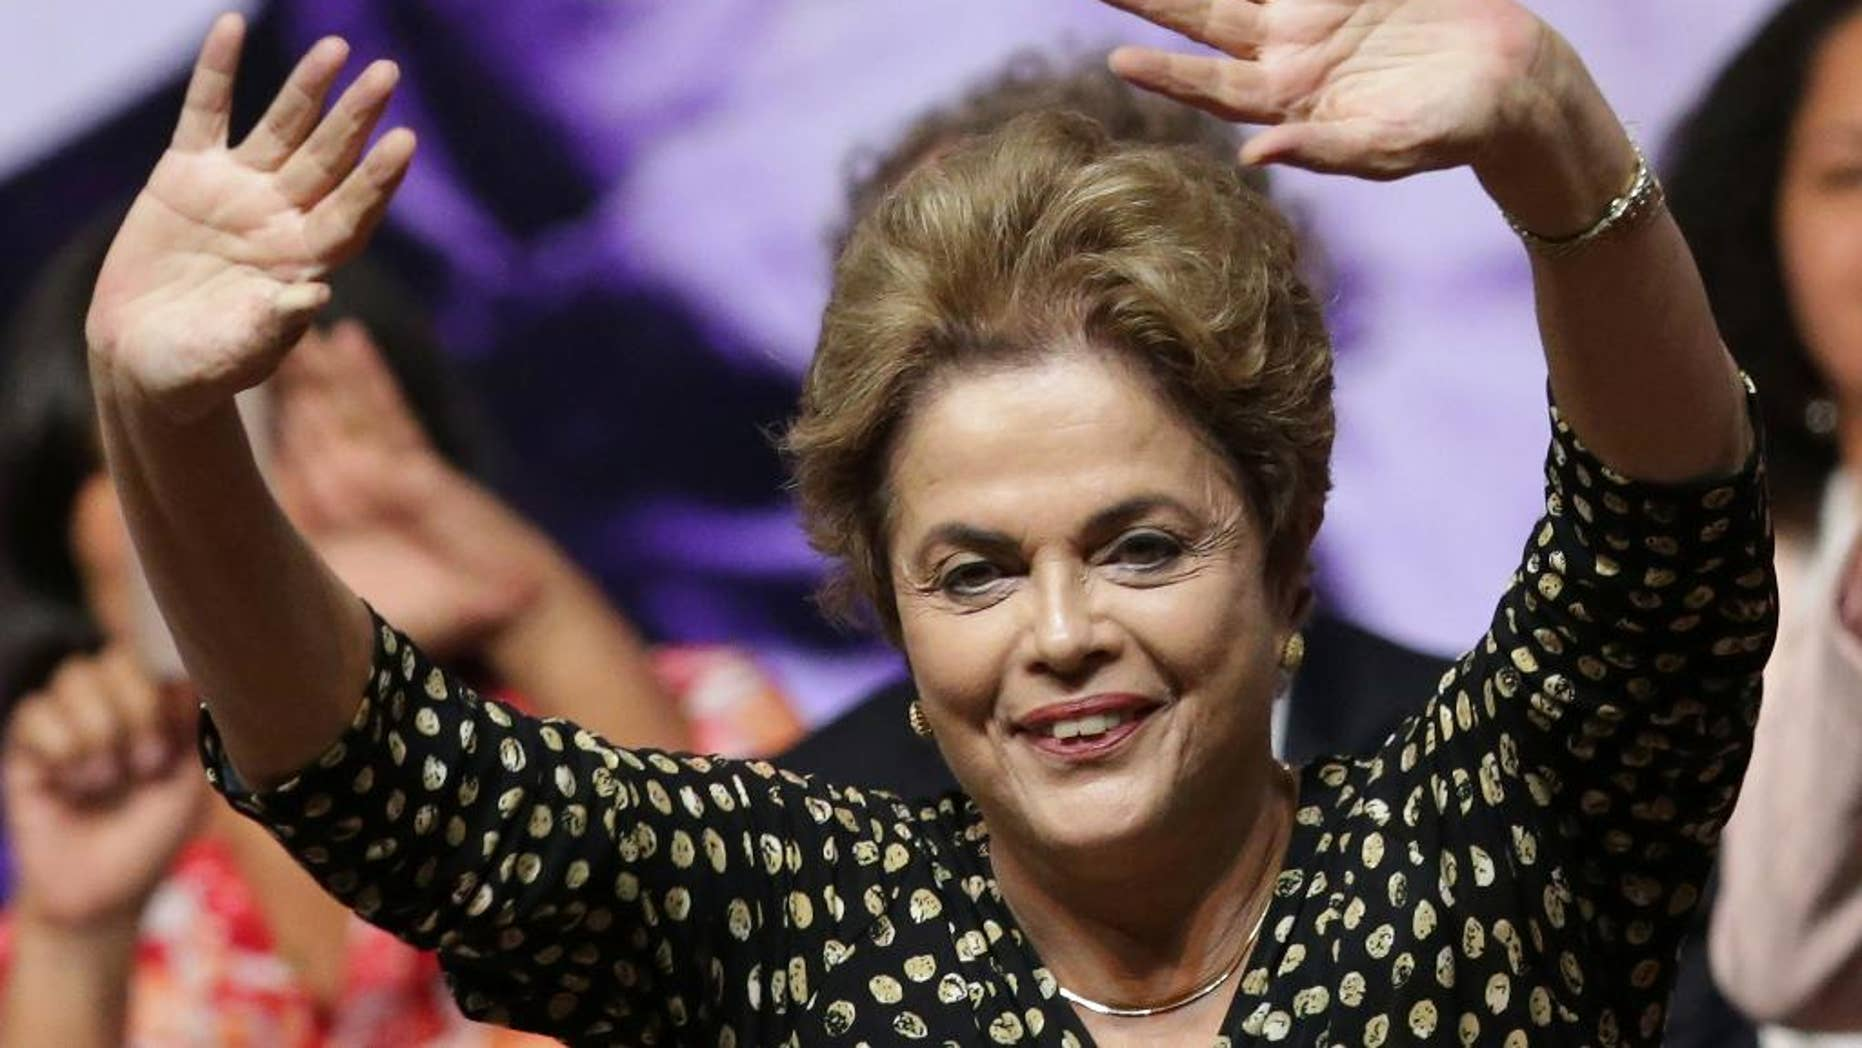 May 10, 2016: Brazil's President Dilma Rousseff waves to the crowd during the opening of the National Conference of Women, in Brasilia.